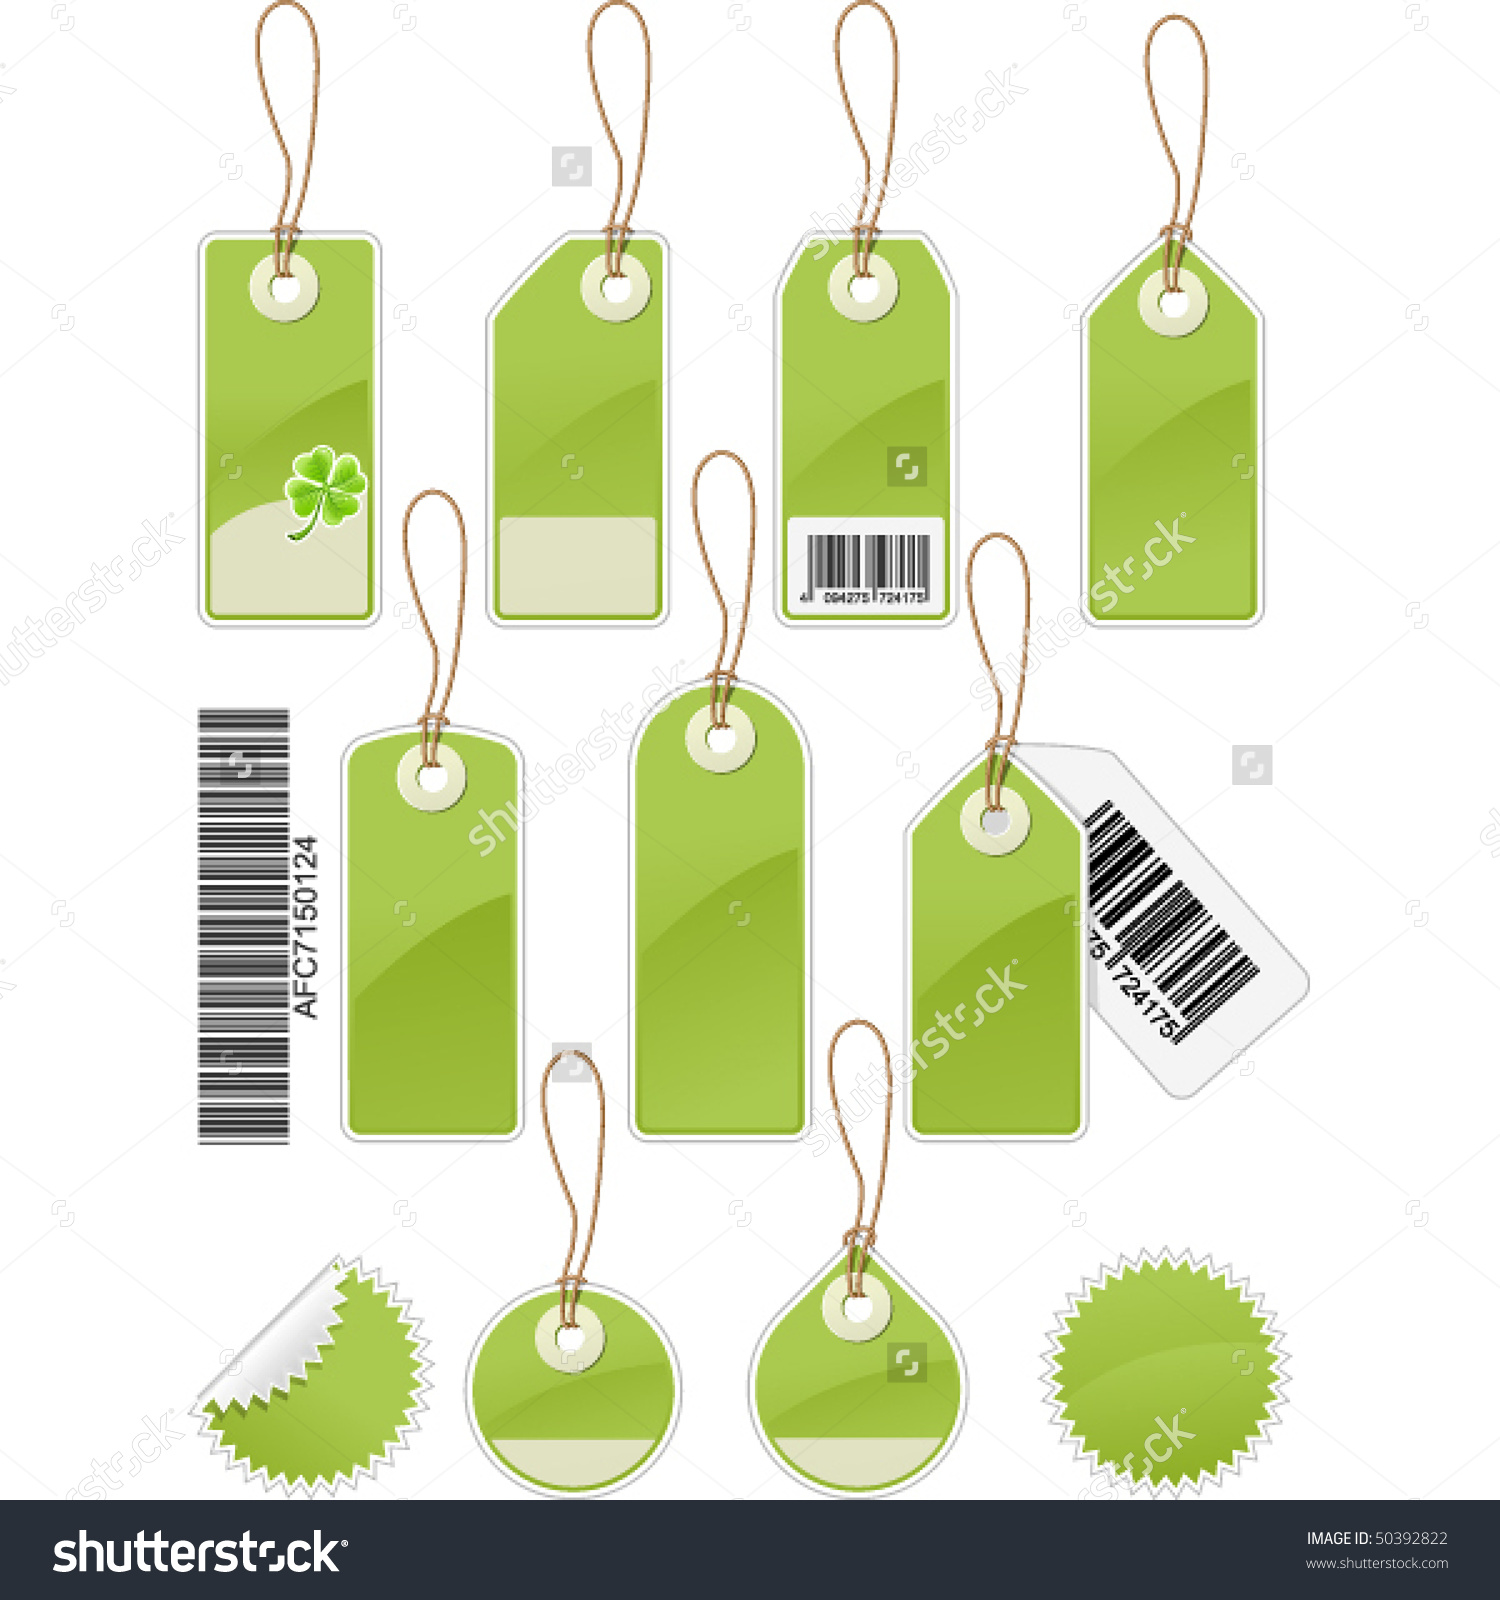 Set Of Price Tags In Different Shapes Stock Vector Illustration.